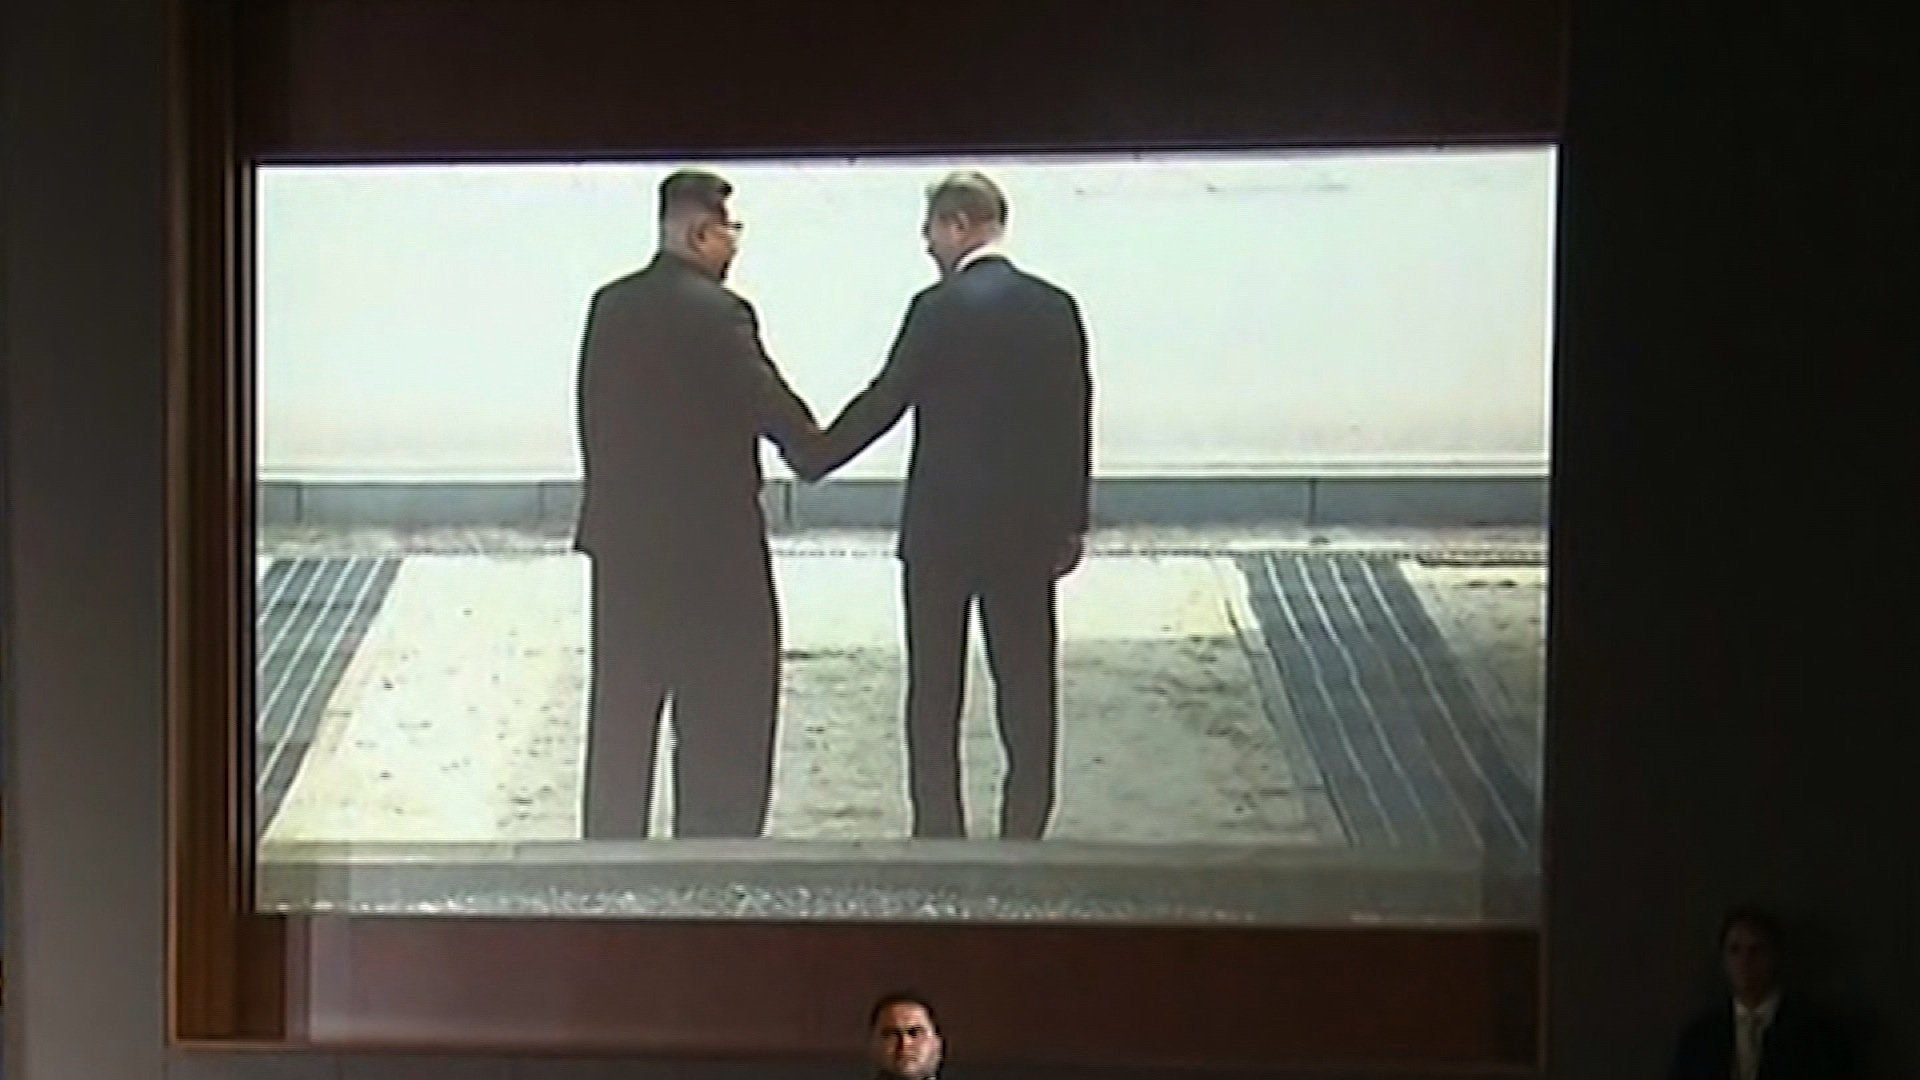 The founder of Destiny Pictures, an independent production company in Hollywood, says that neither he nor his company were involved in the production of a short film made for the historic US-North Korean summit held in Singapore this week.